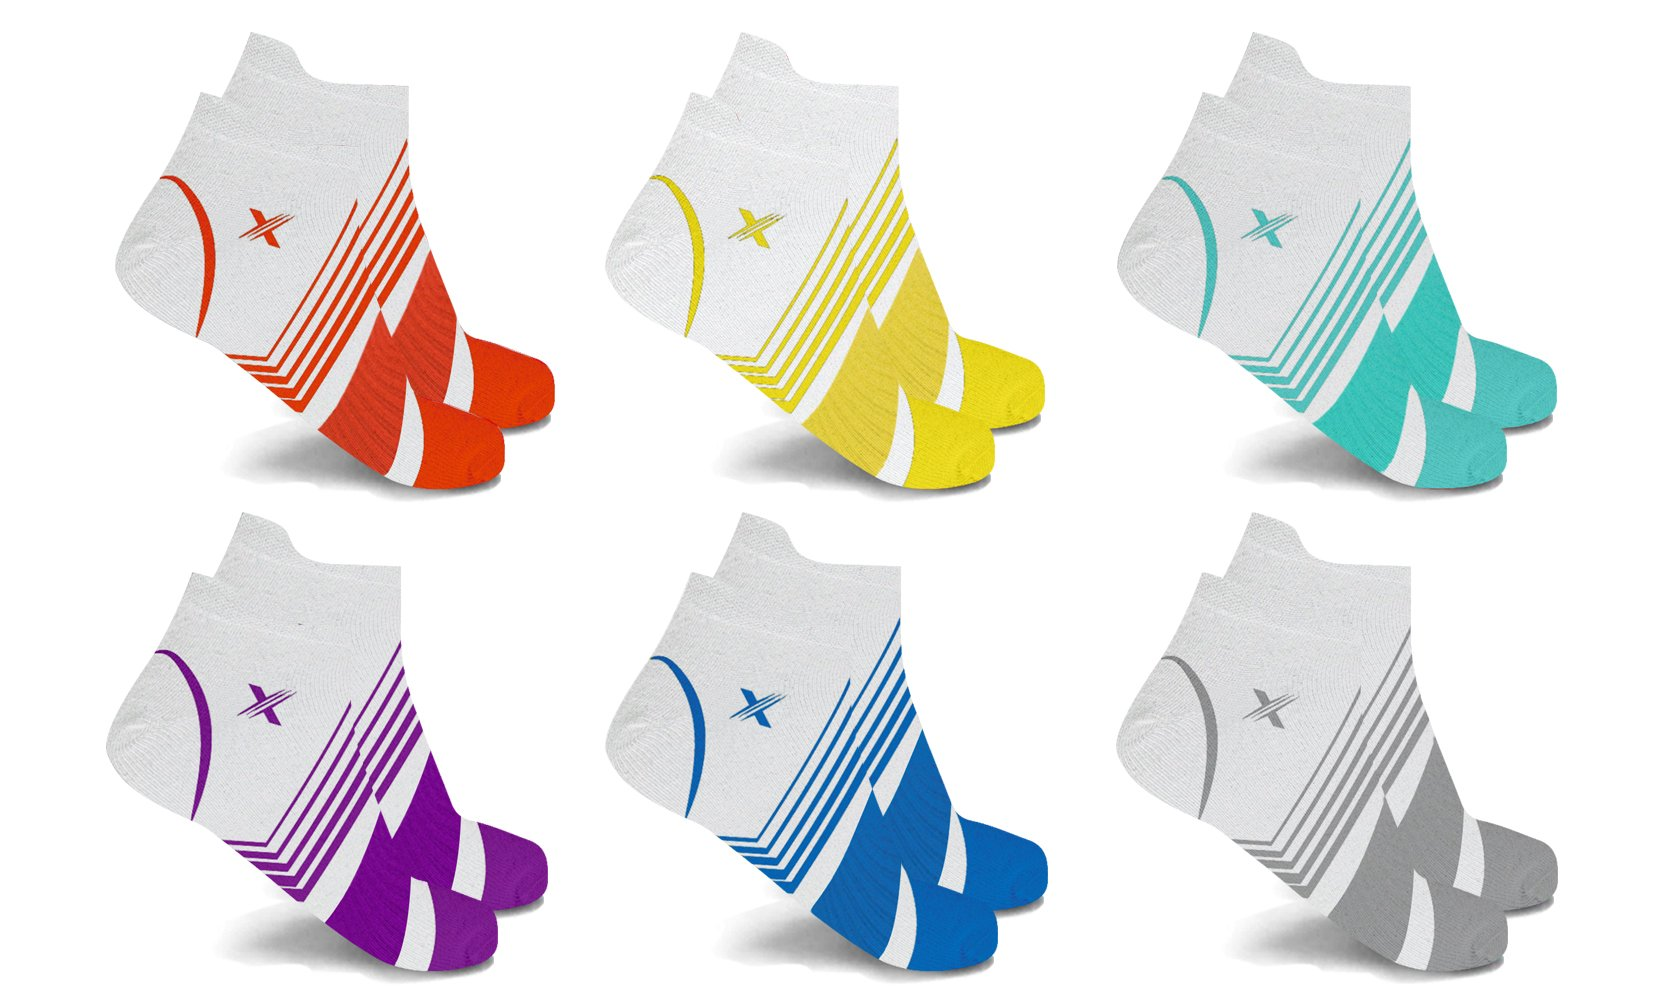 XTF Ankle-Length Graduated Compression Socks (6-Pairs)